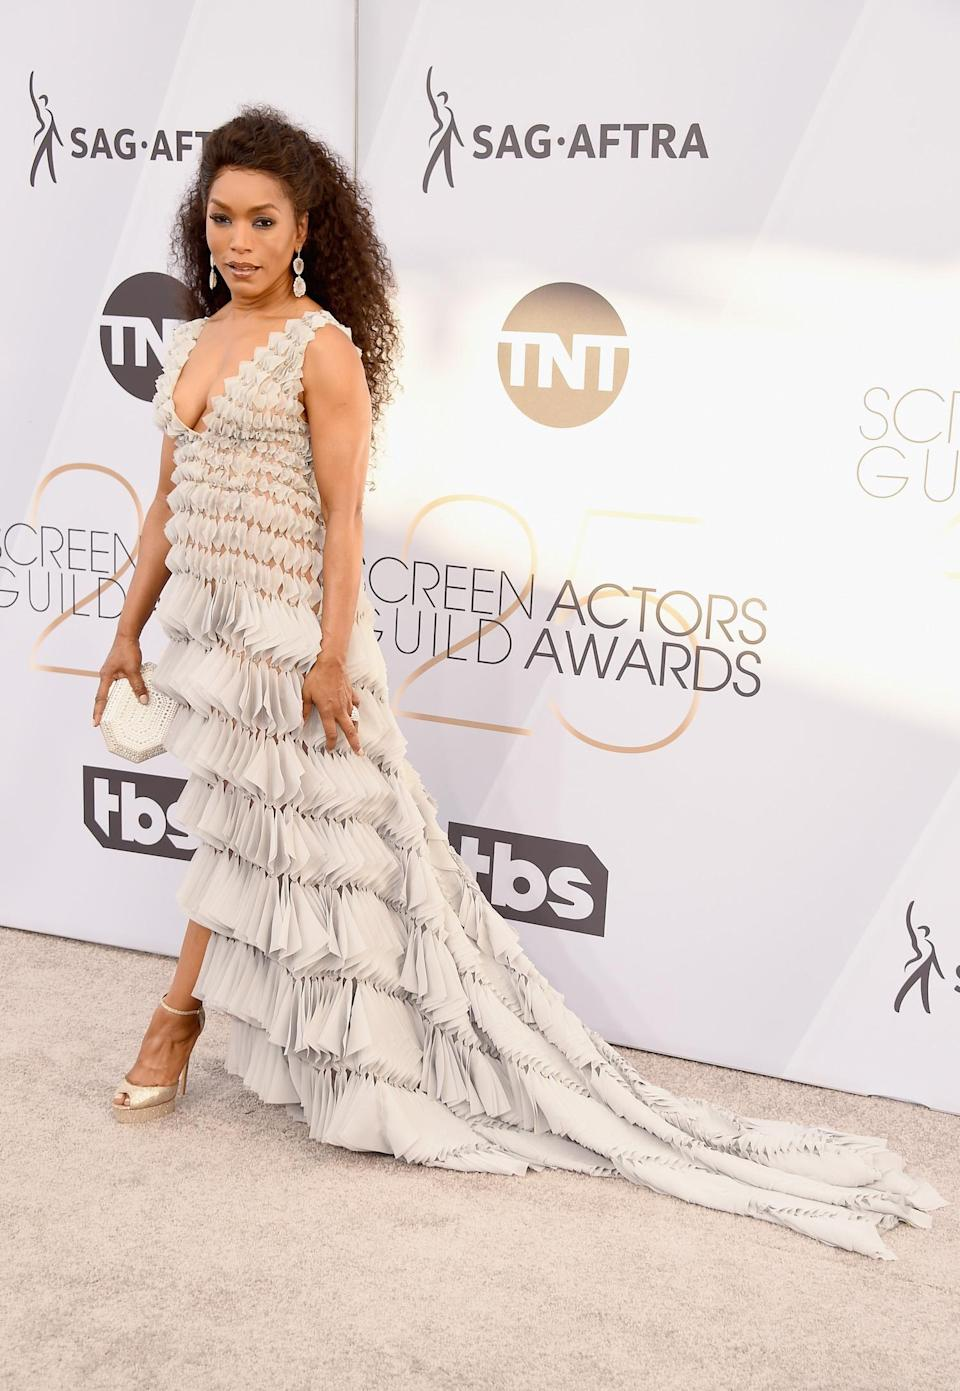 <p>Angela Bassett on the carpet at the 2019 Screen Actors Guild Awards in Los Angeles. (Photo: Getty Images) </p>